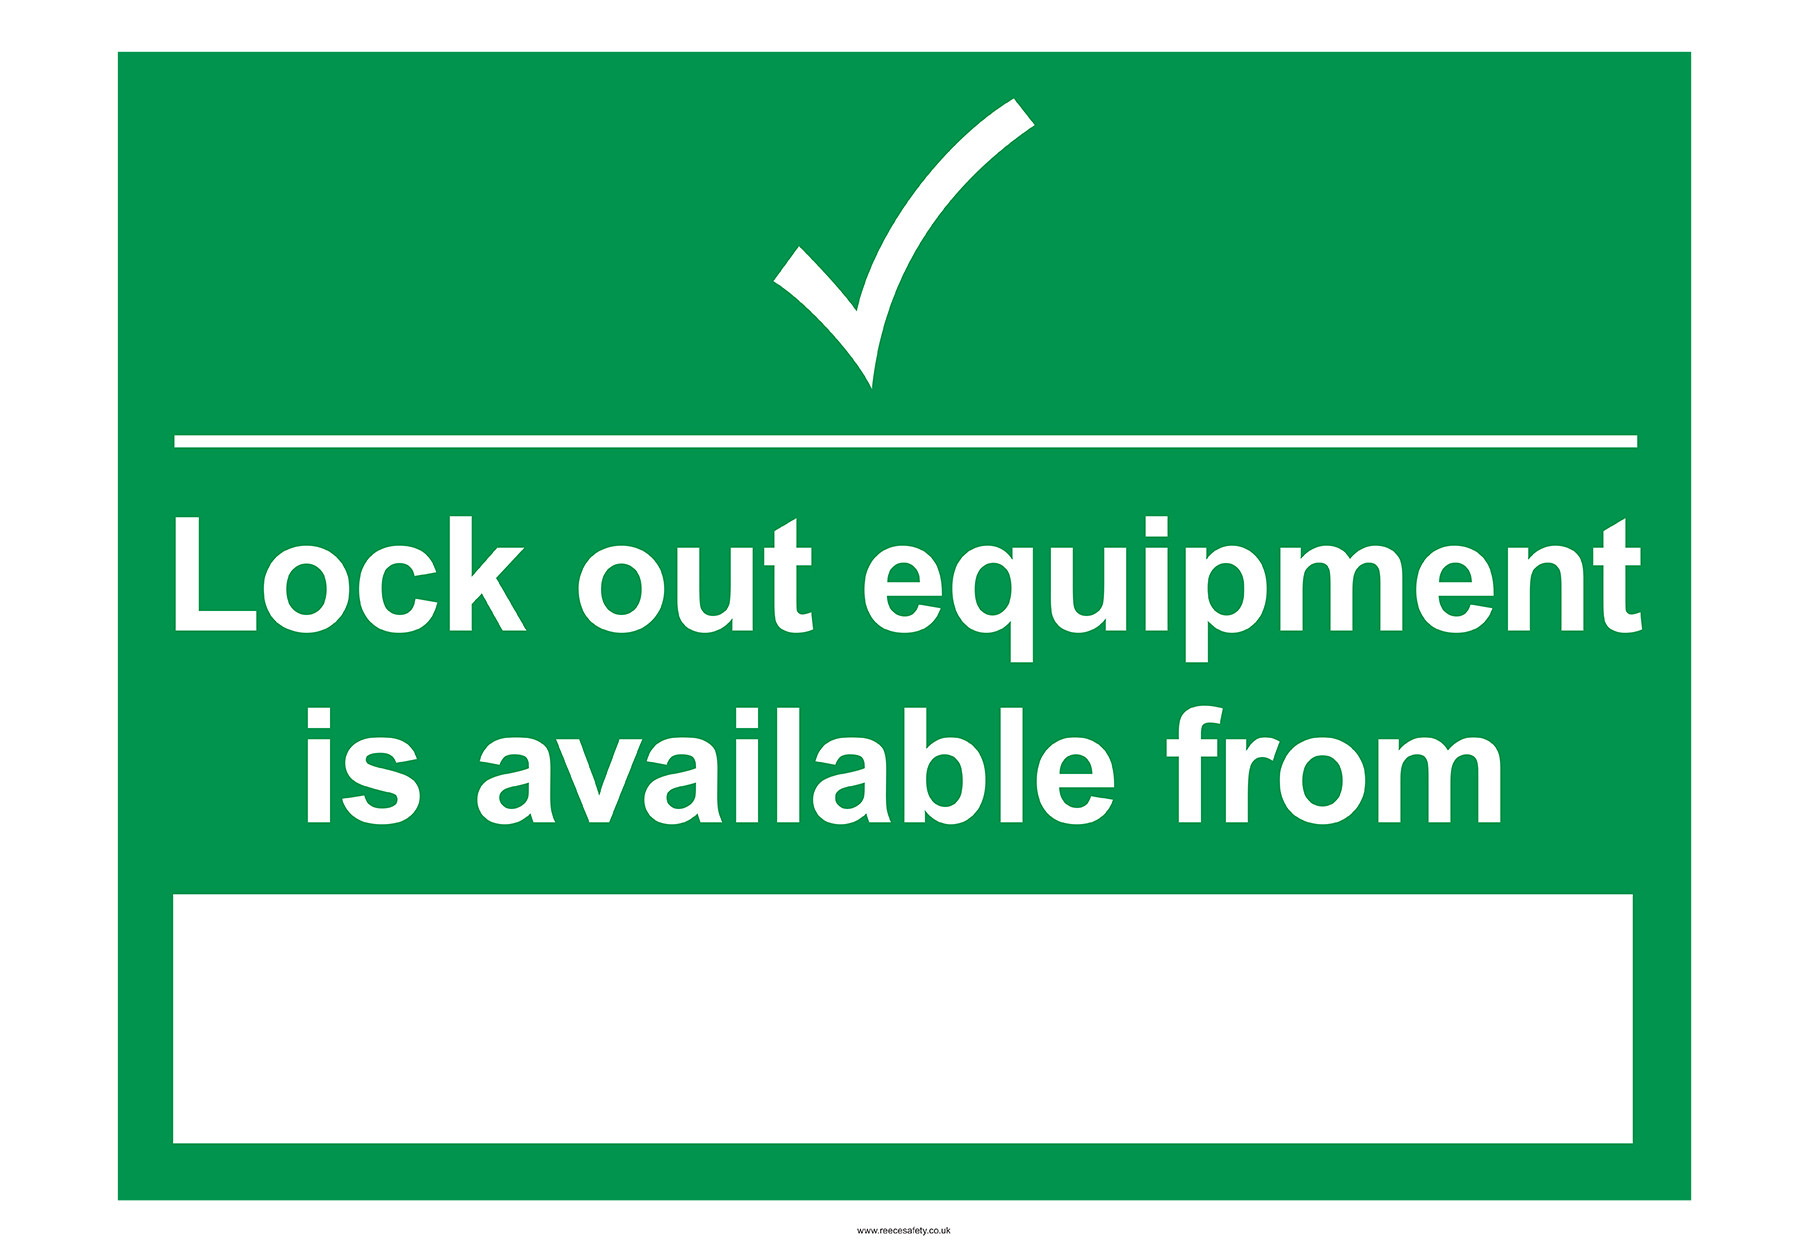 S/A Lockout Wall Sign 450x600mm Lockout equipment is avail